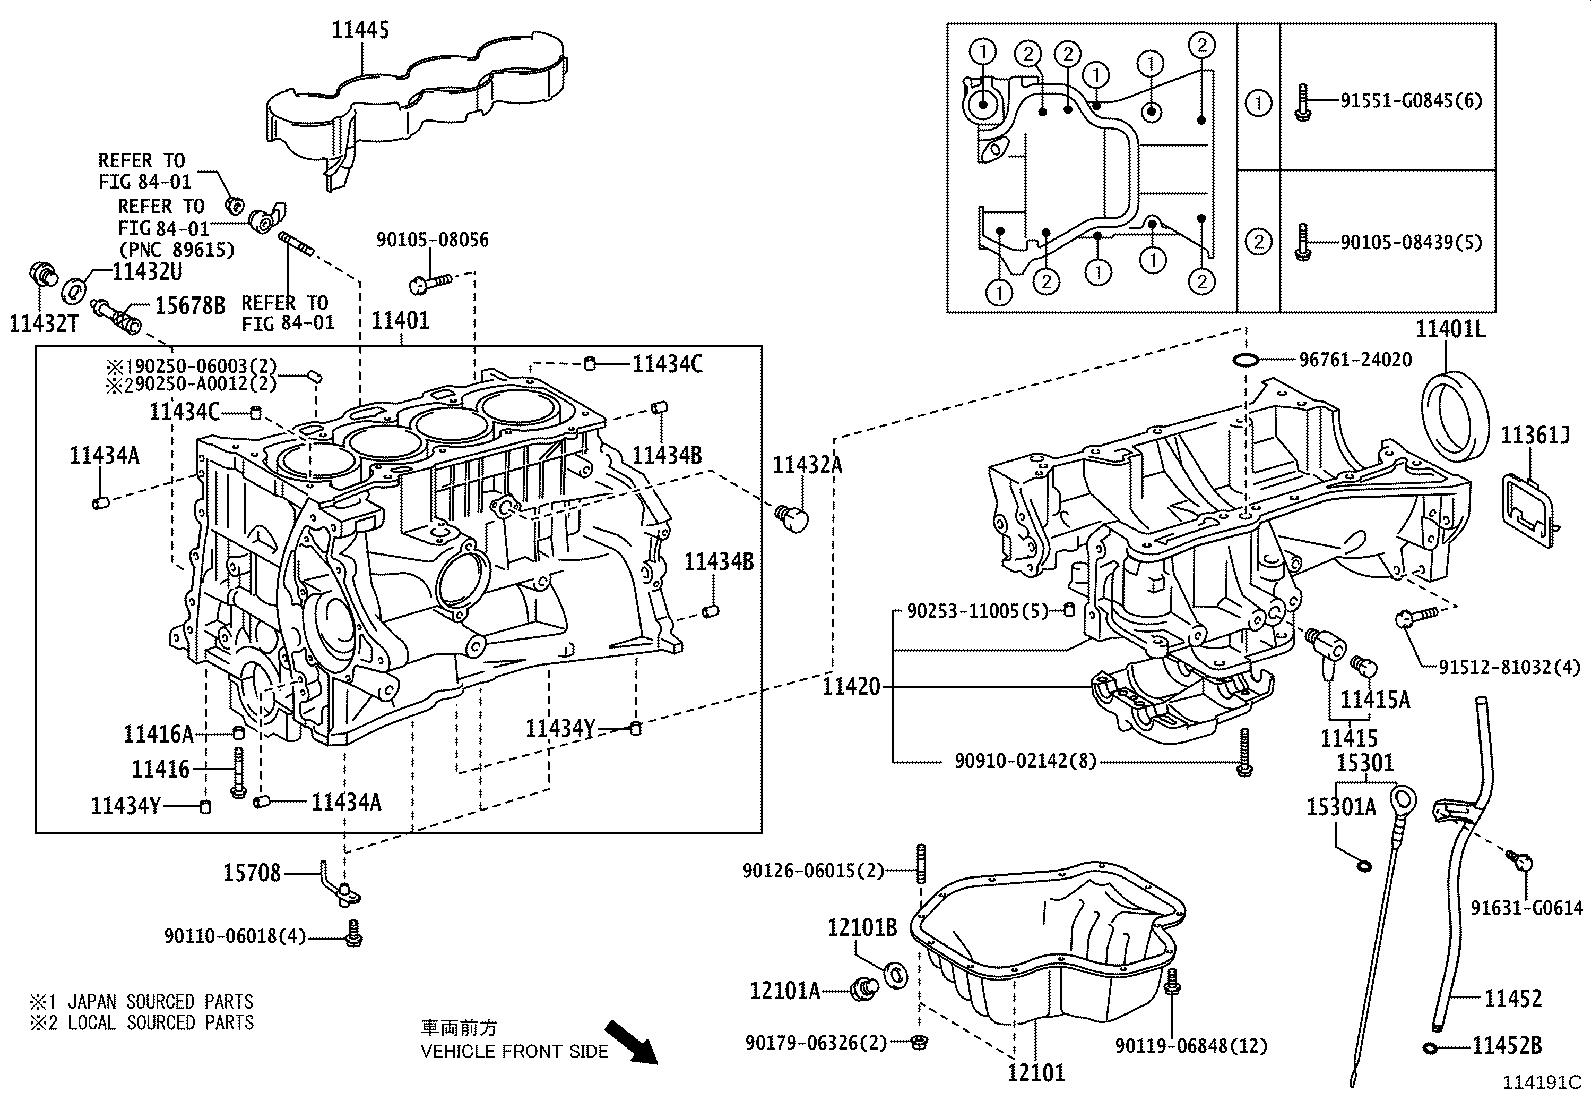 Toyota Camry Filter Oil Control Valve Engine